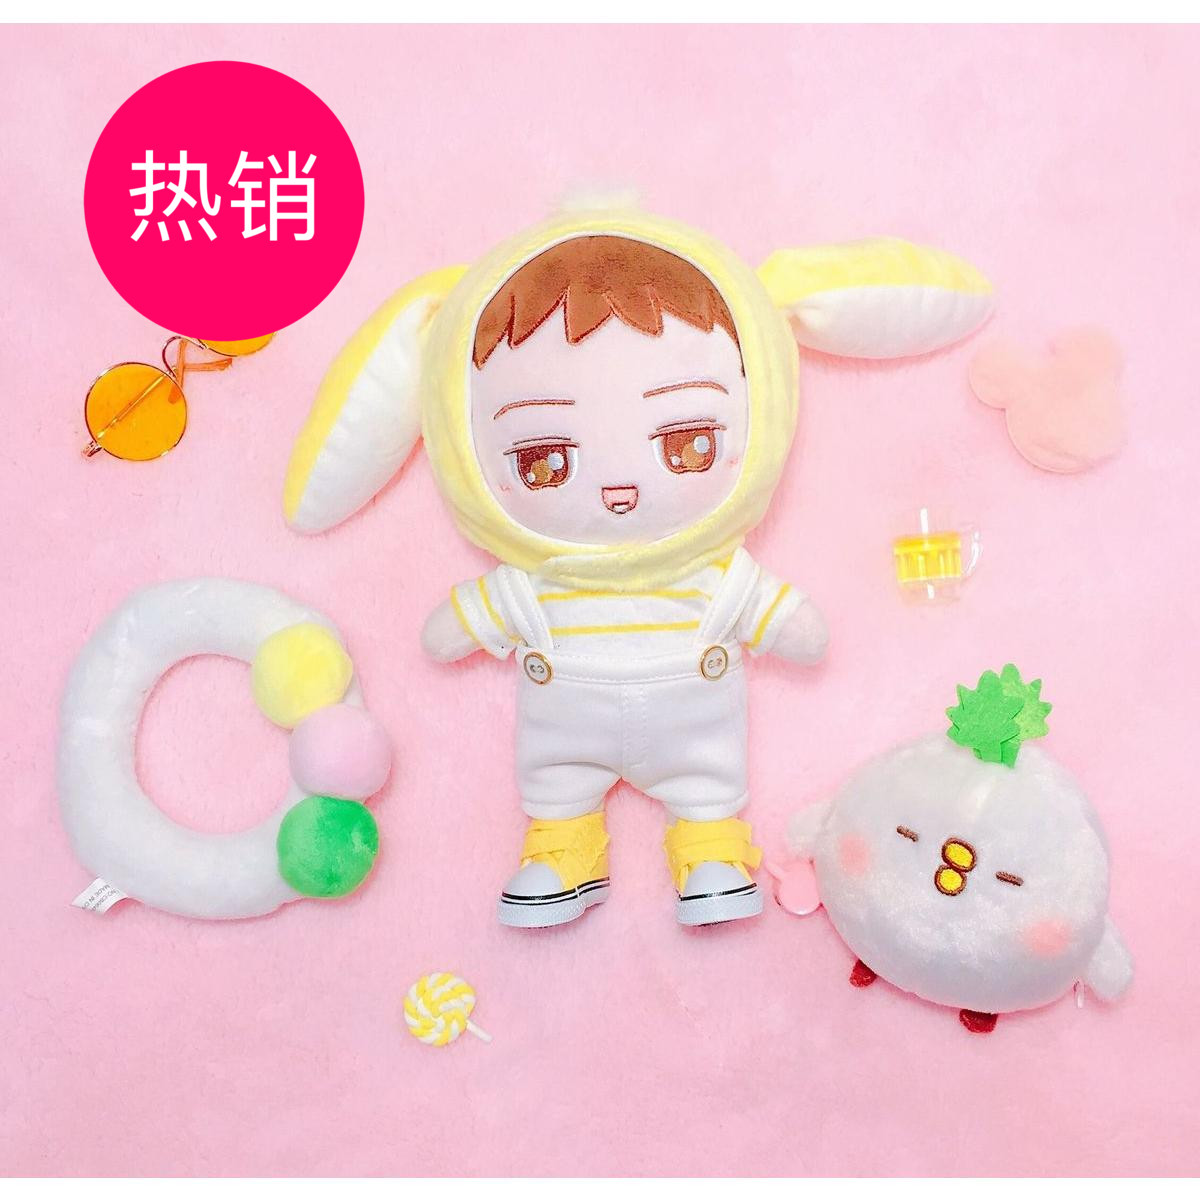 [MYKPOP]EXO KPOP Doll Accessories Big Ears Bonnets for 20cm Dolls KPOP Fans Collection SA18070403